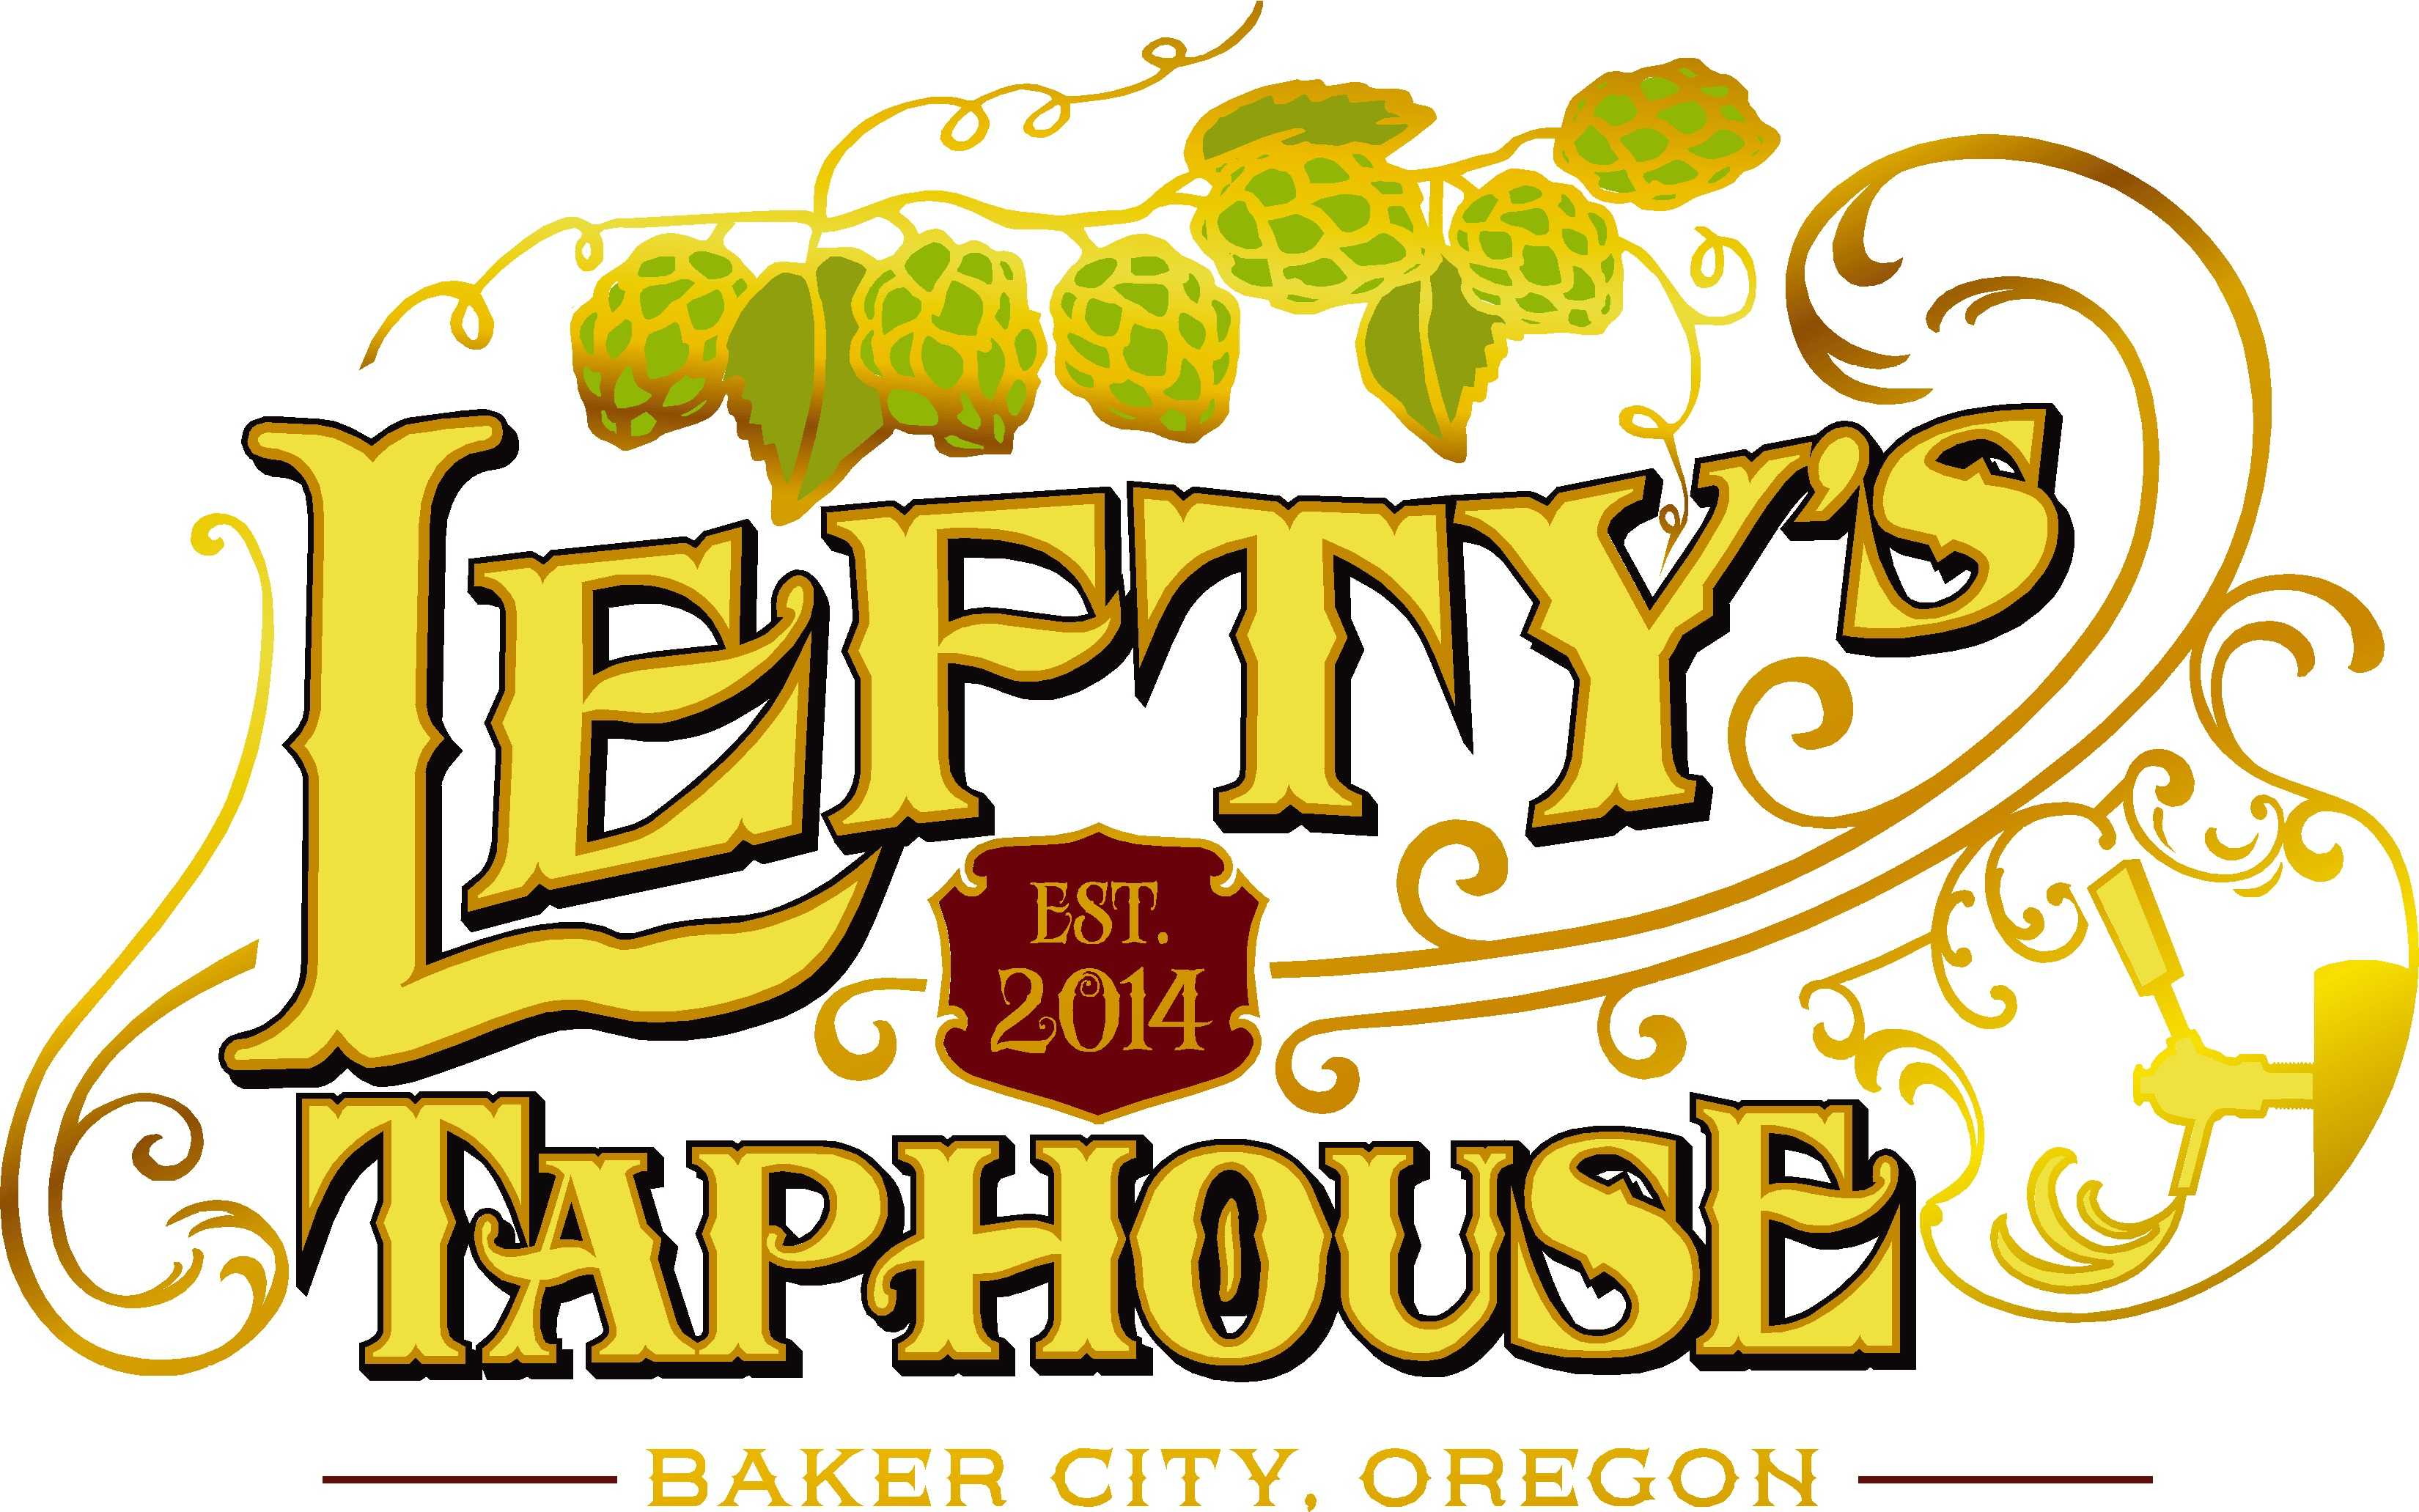 Lefty's Taphouse